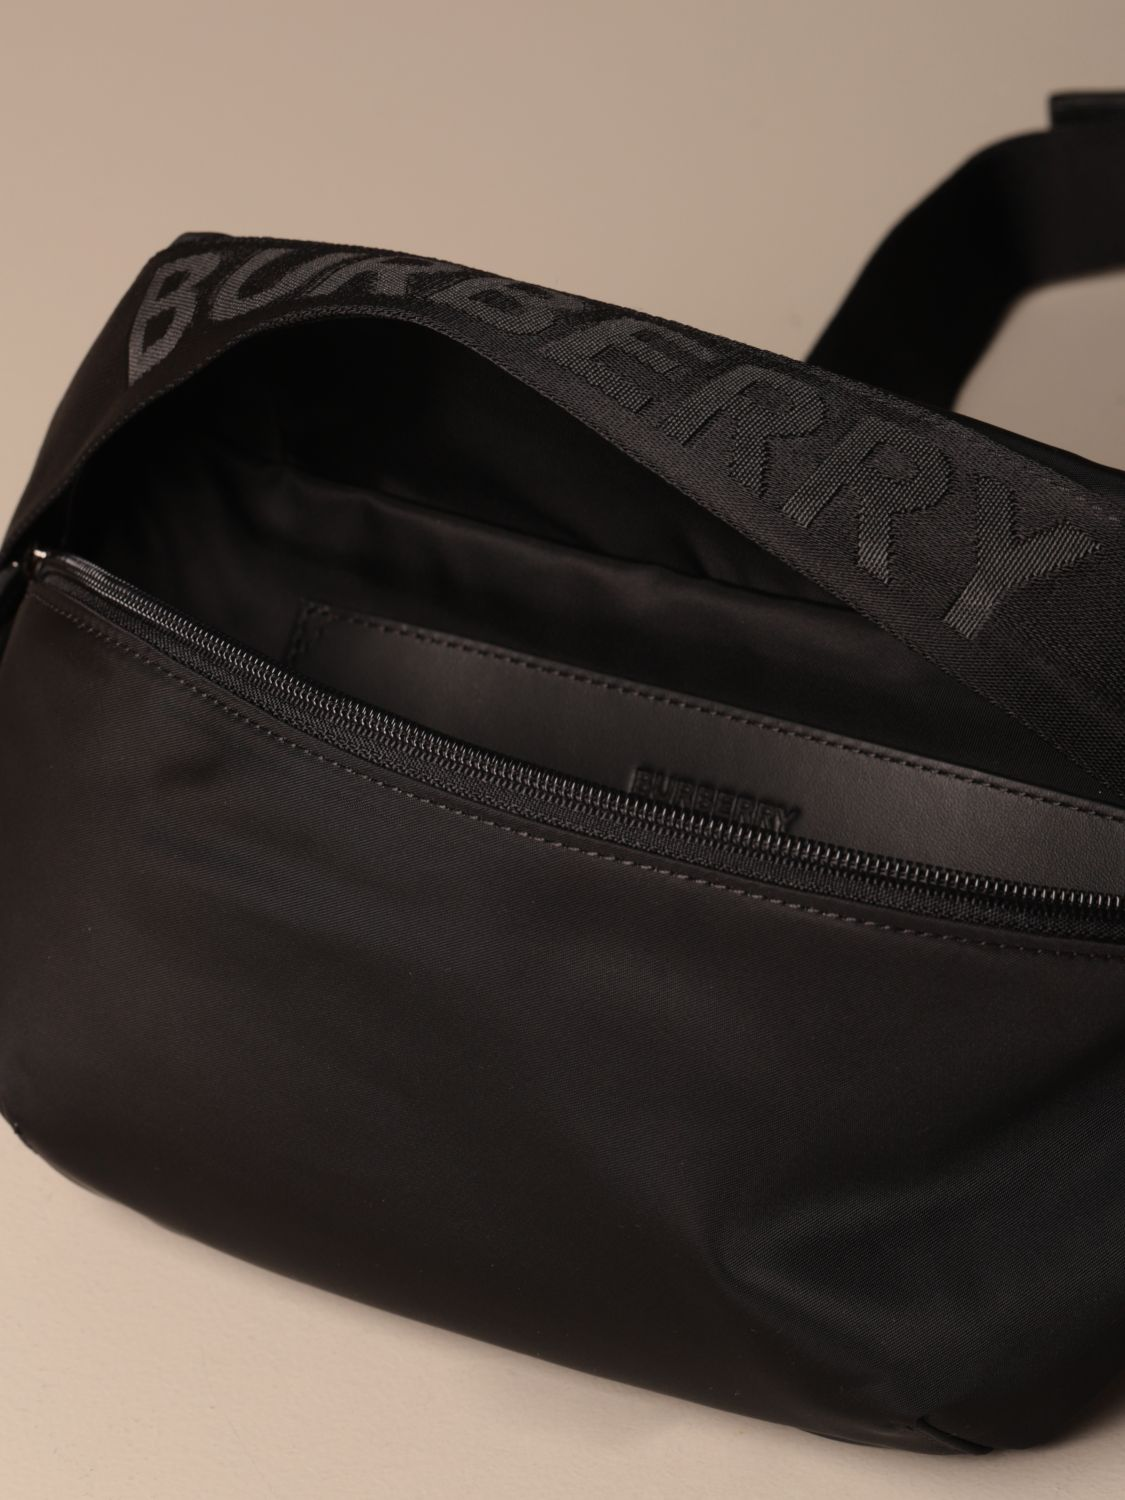 Bags Burberry: Bags men Burberry black 5